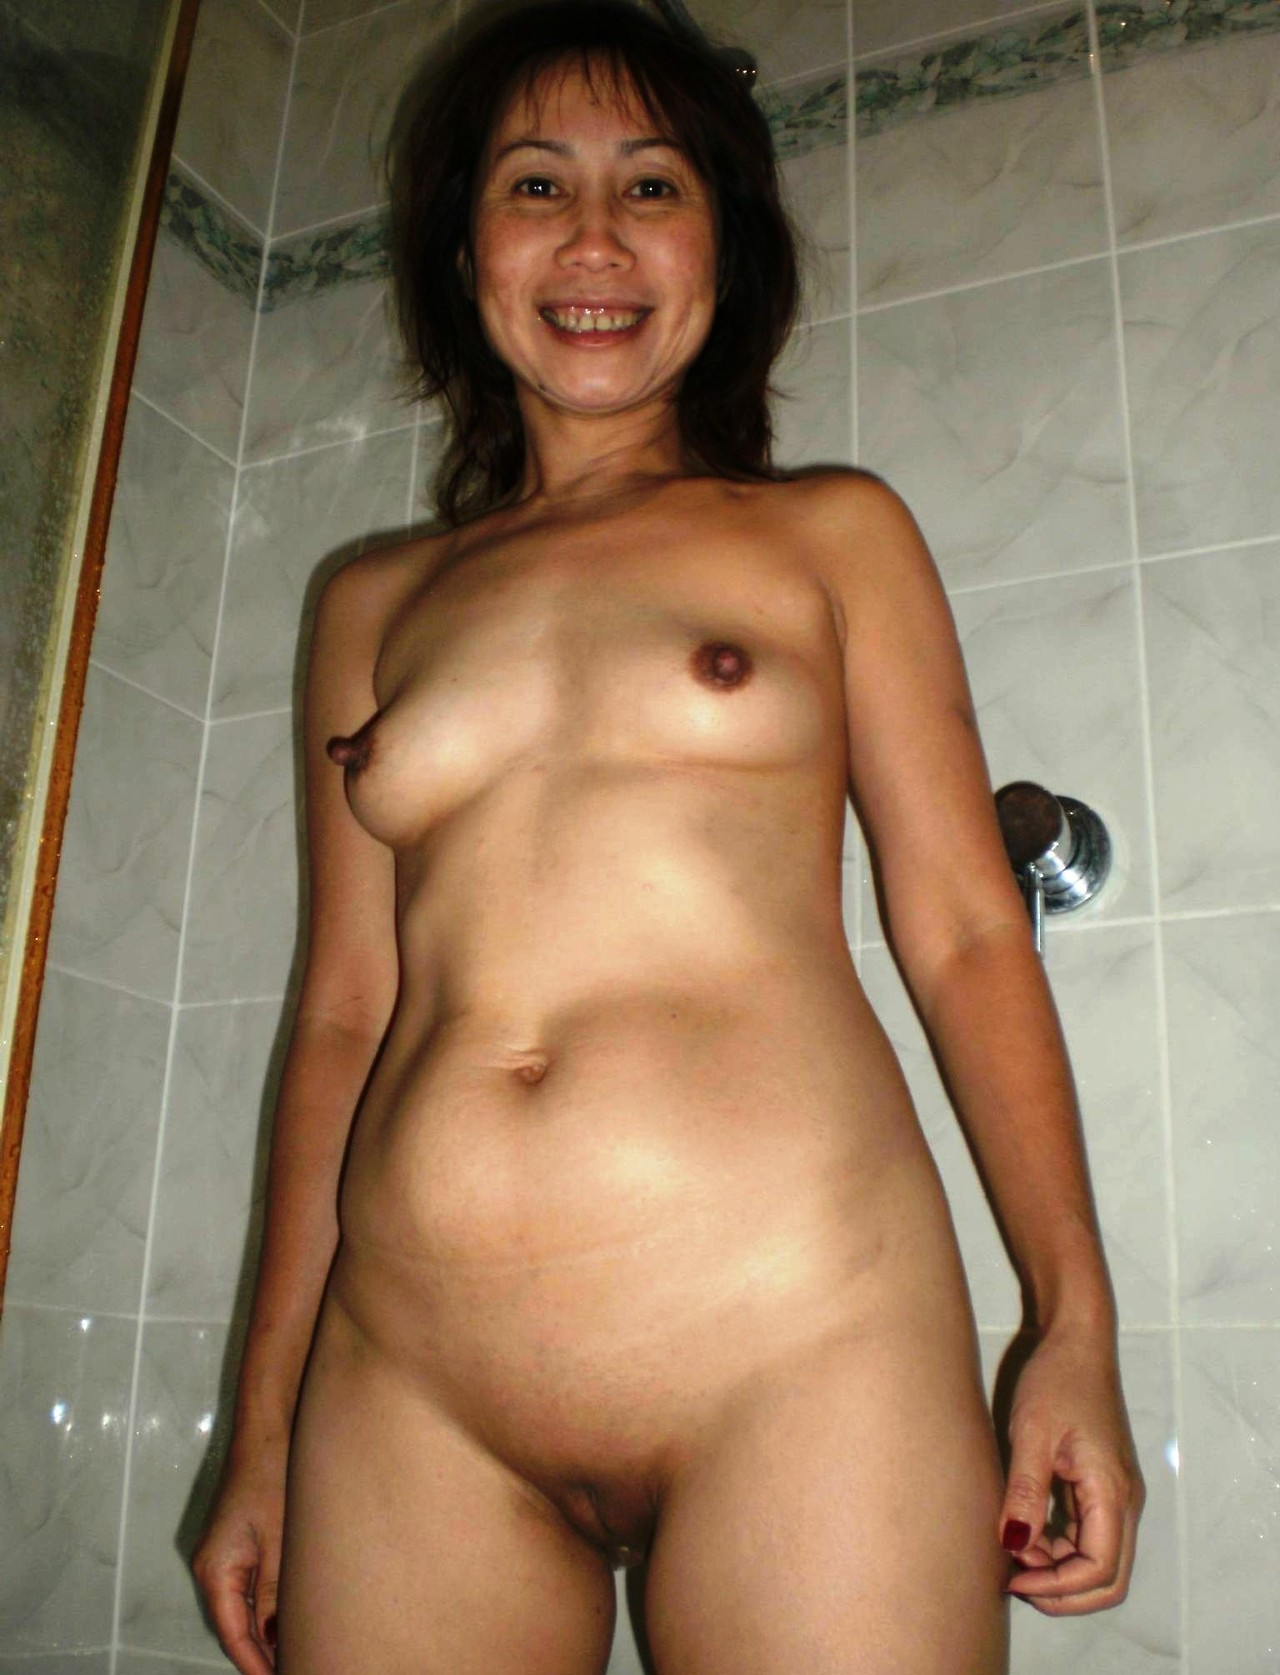 Chinease nude photo nude video